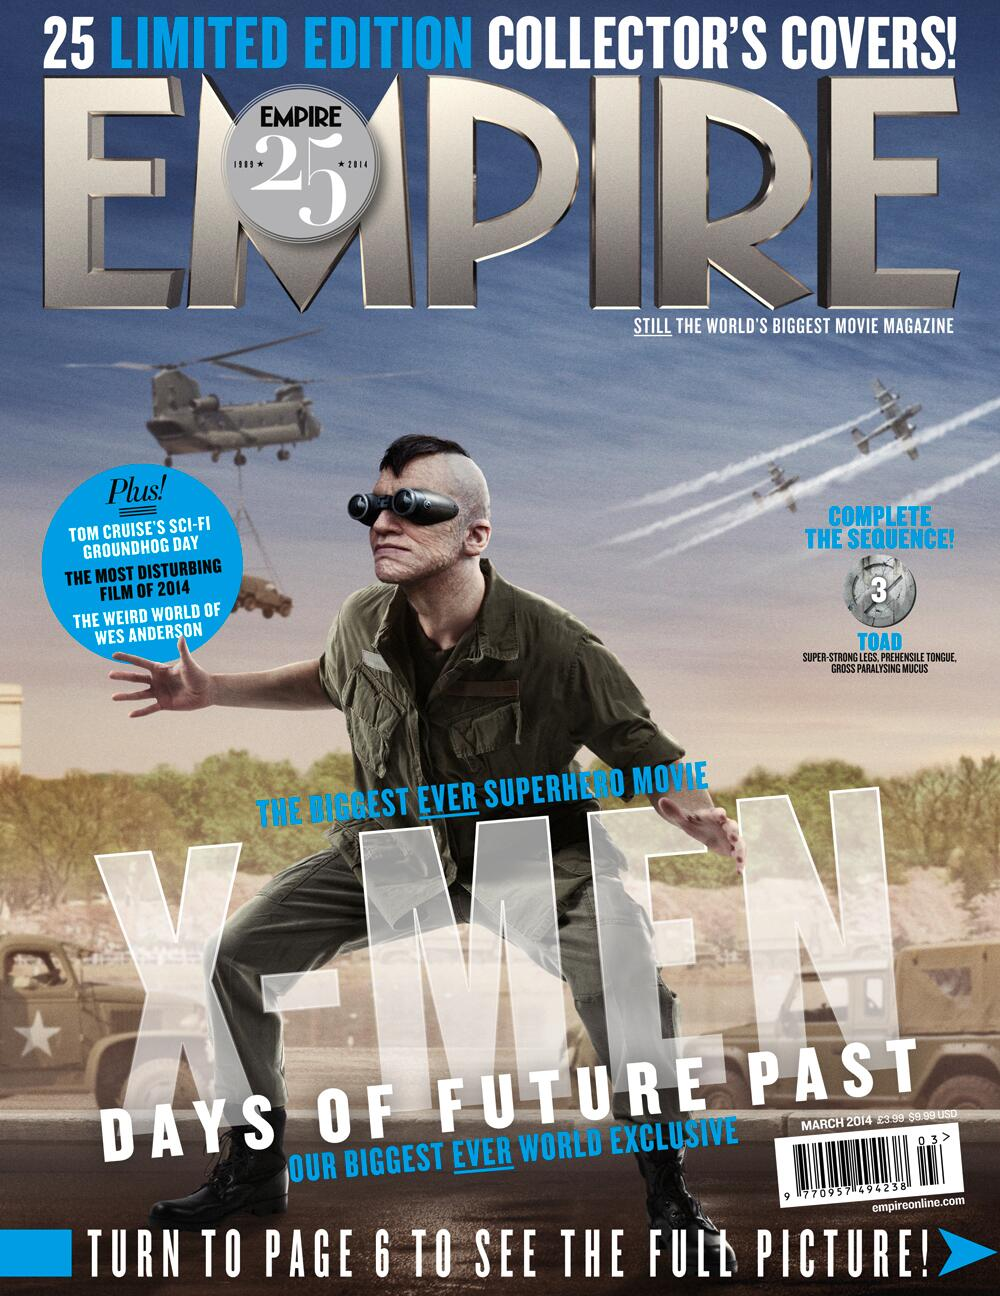 Empire - XDOFP Cover - 003 - Toad